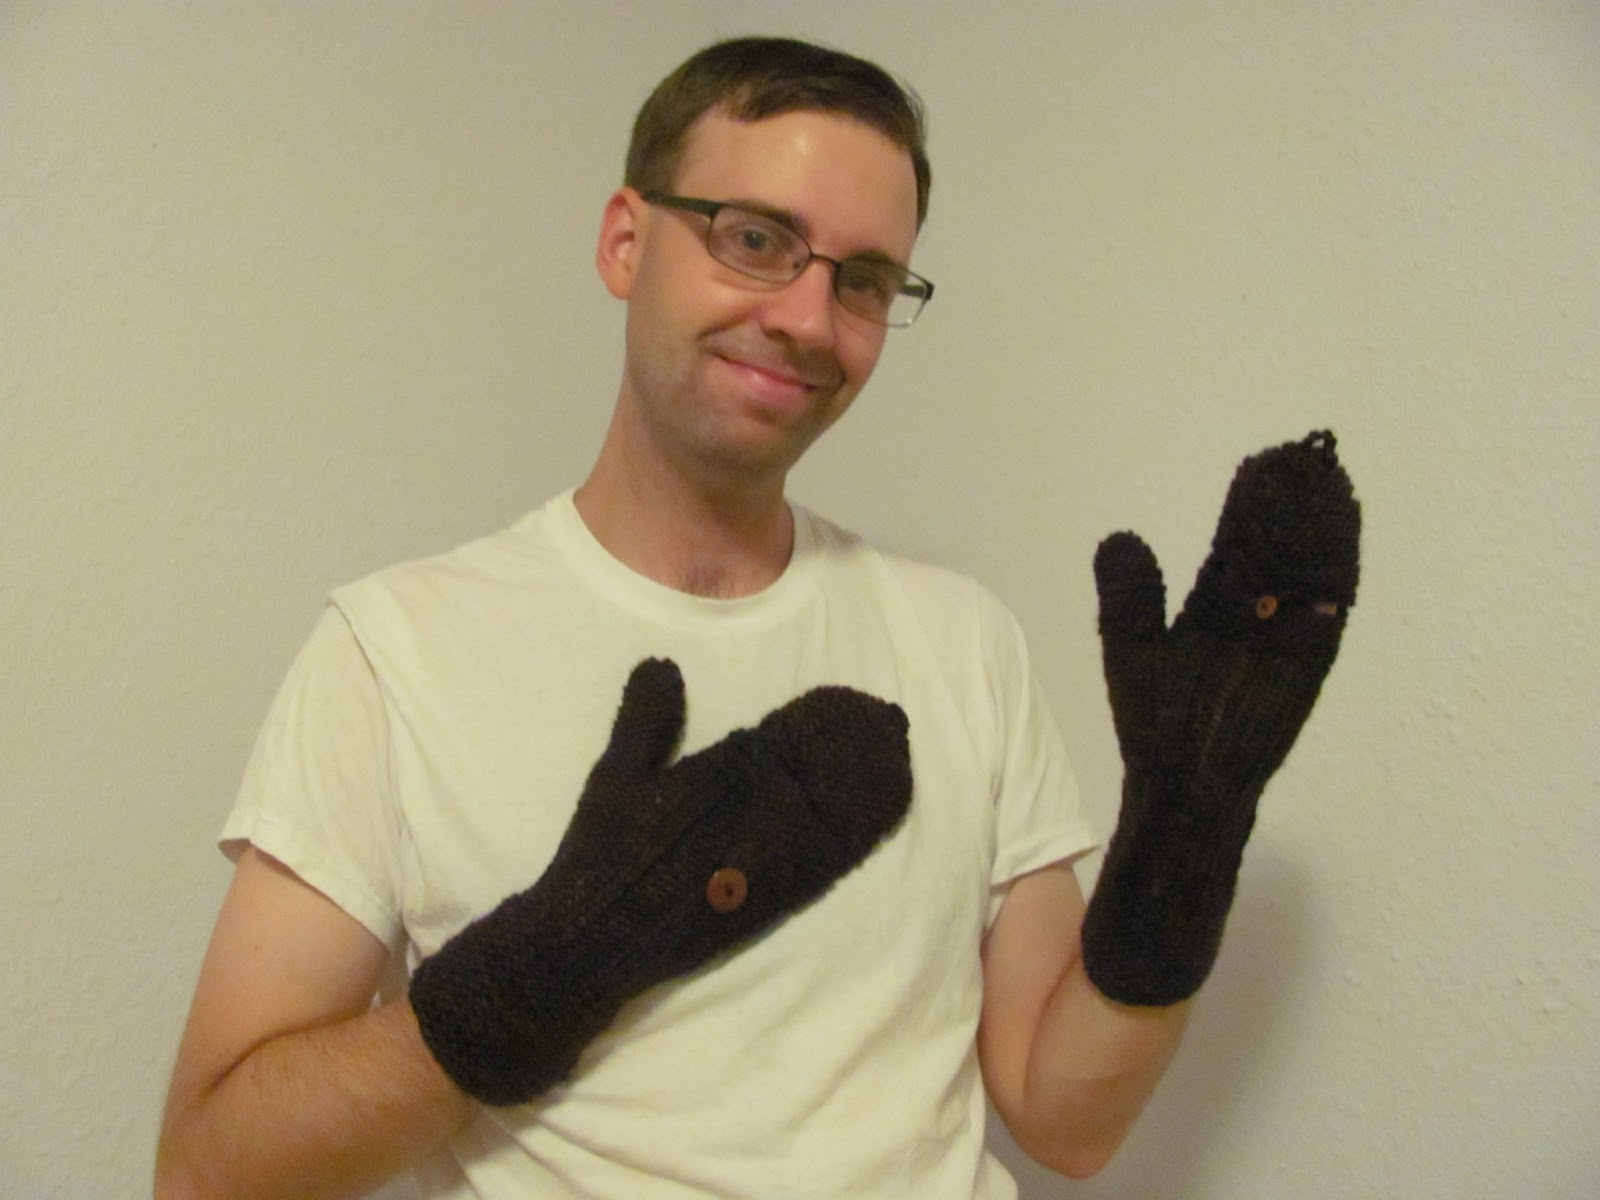 Cory posing with the brown mittens